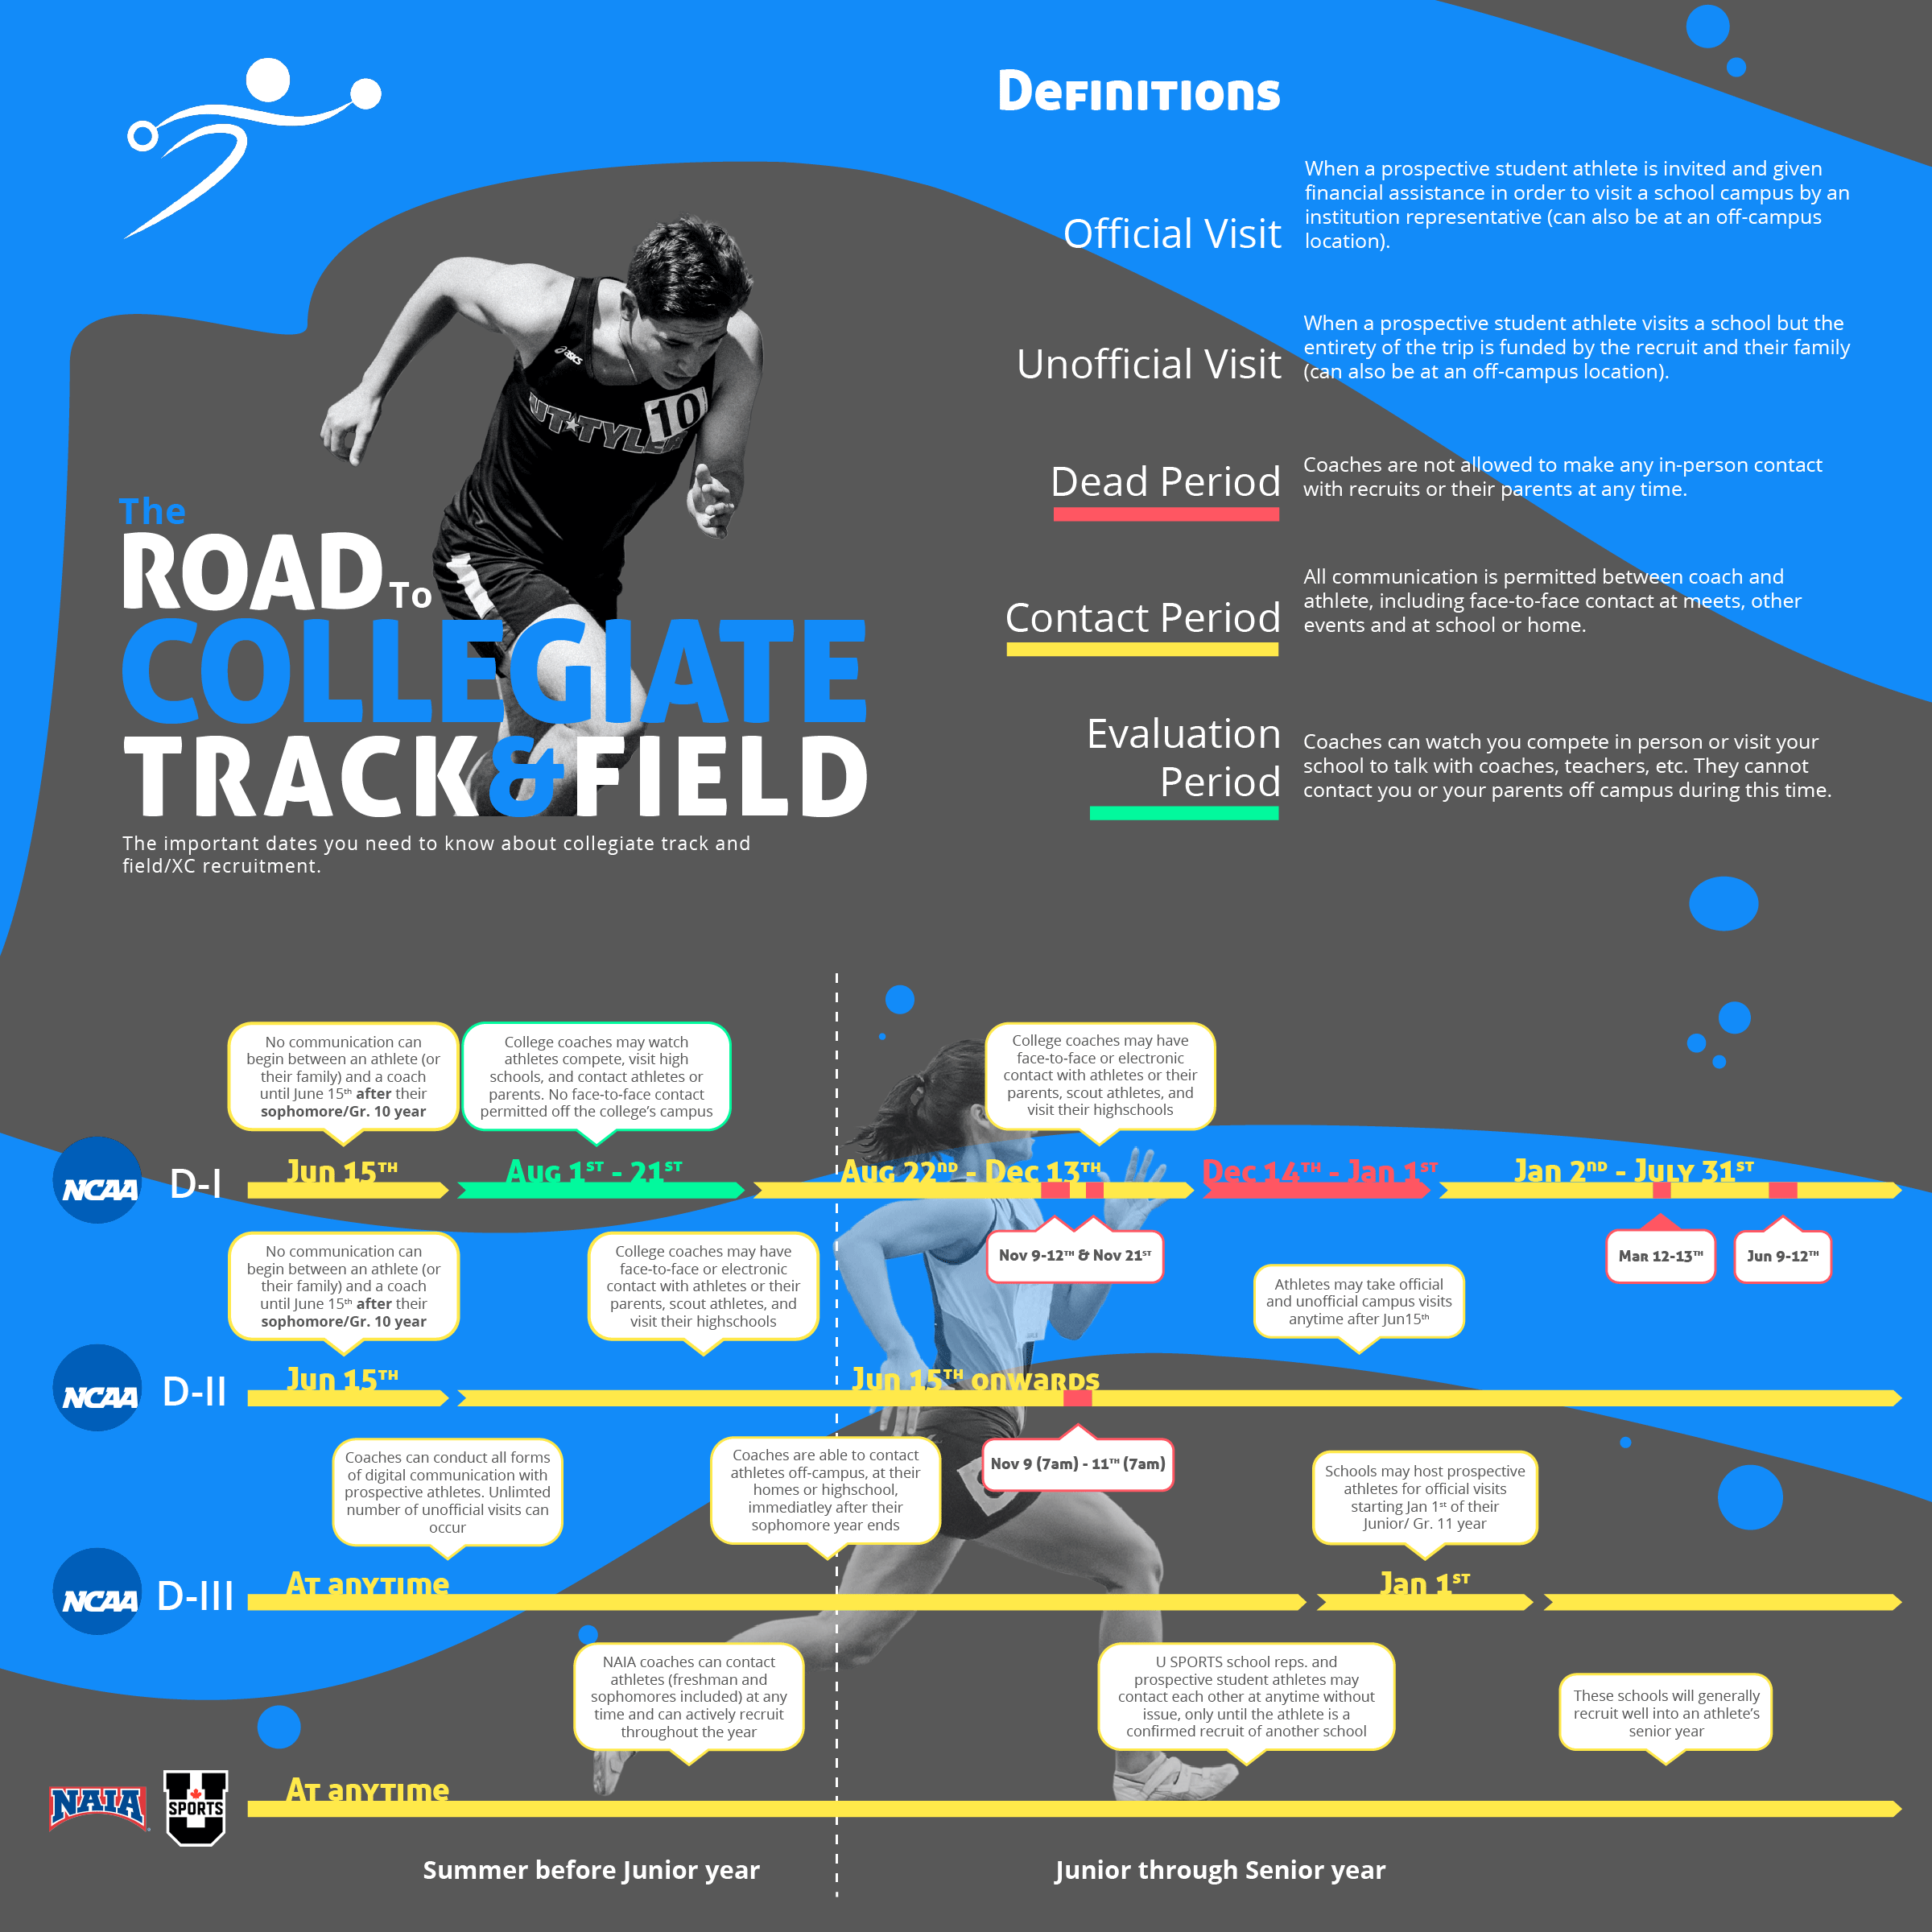 Infographic representing the important dates for collegiate track and field recruitment in the NCAA, NAIA, and USPORTS